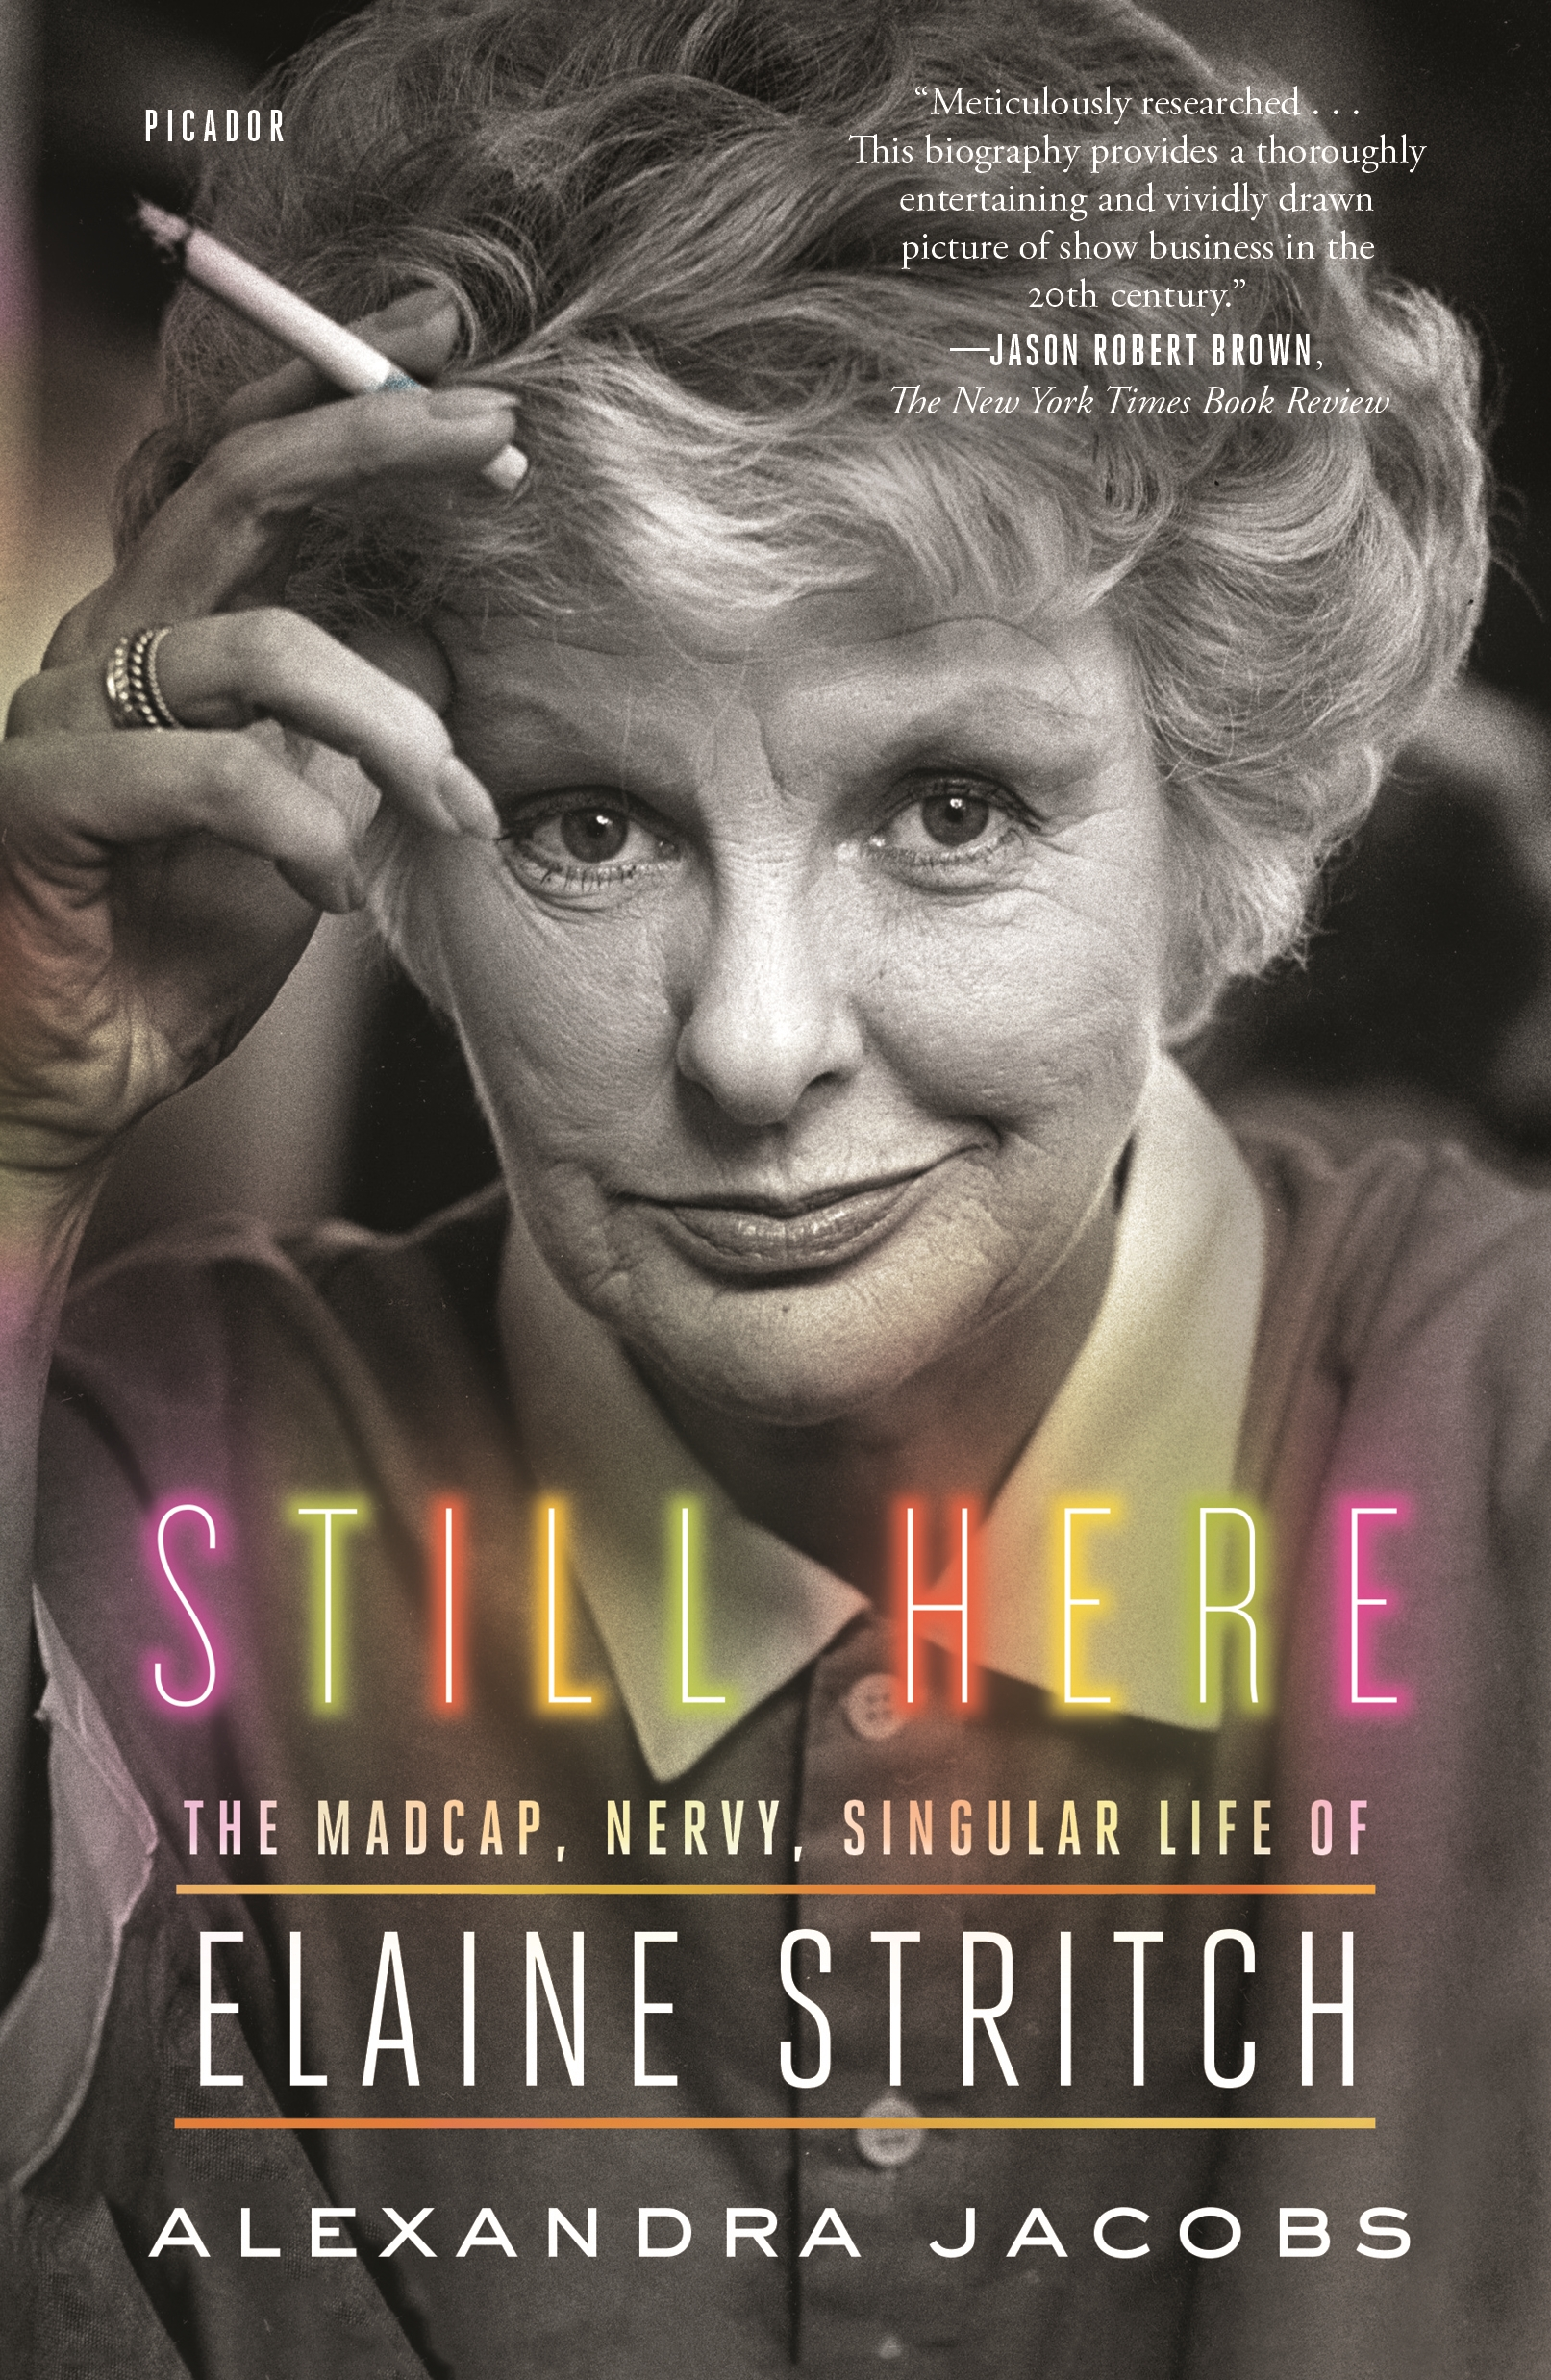 Still here the madcap, nervy, singular life of Elaine Stritch cover image